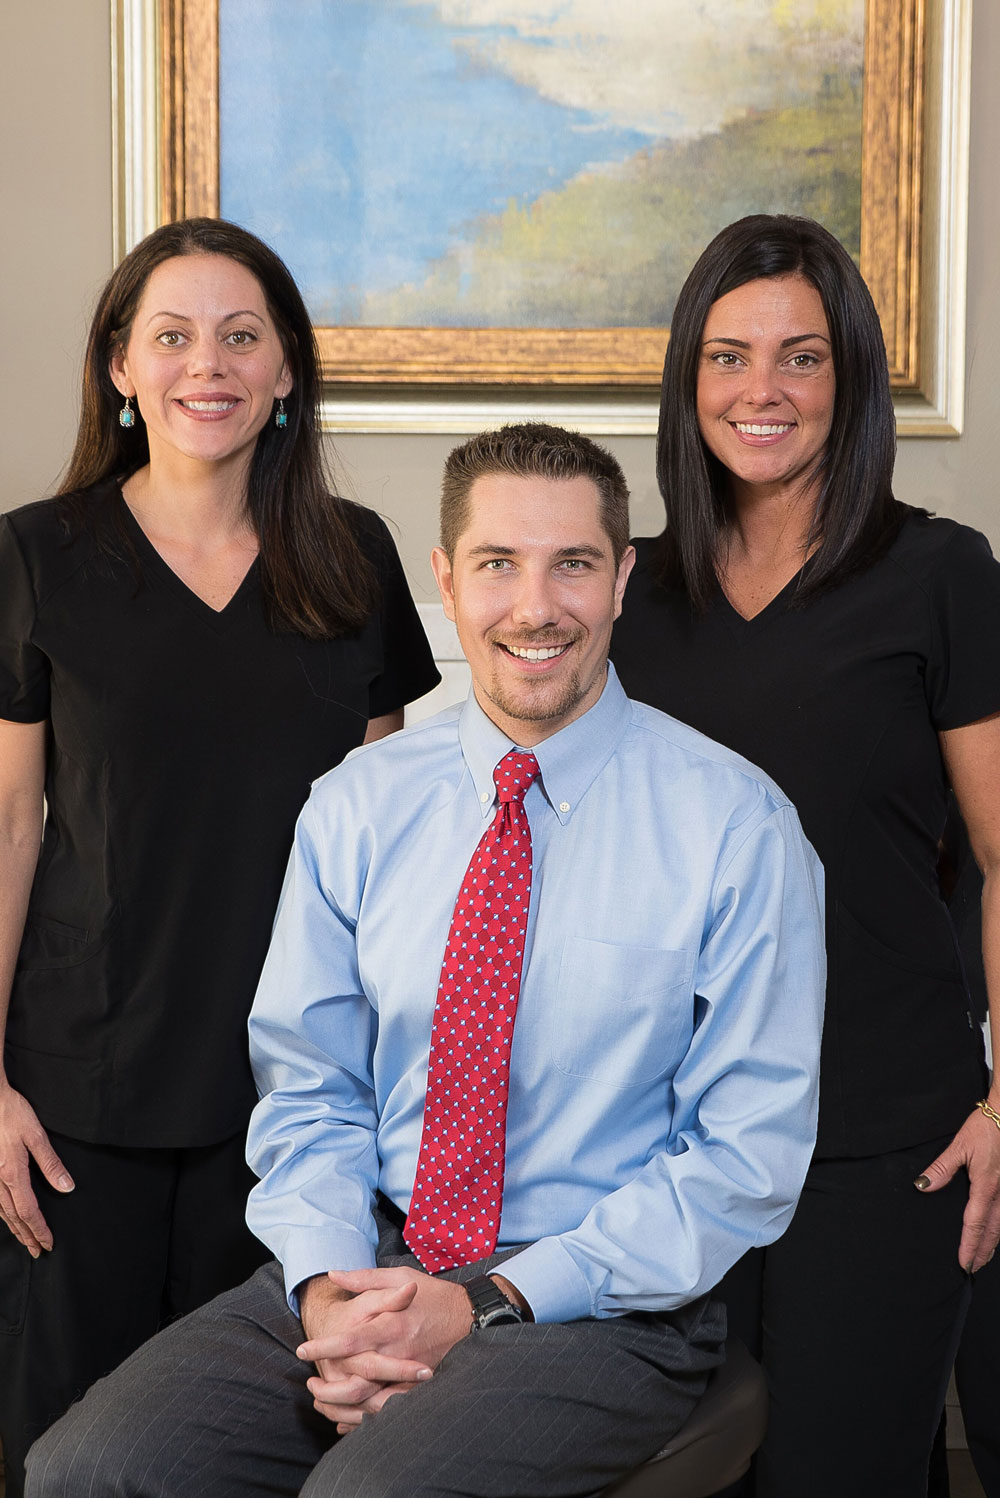 Dr. Brad with staff members Holly and Melissa